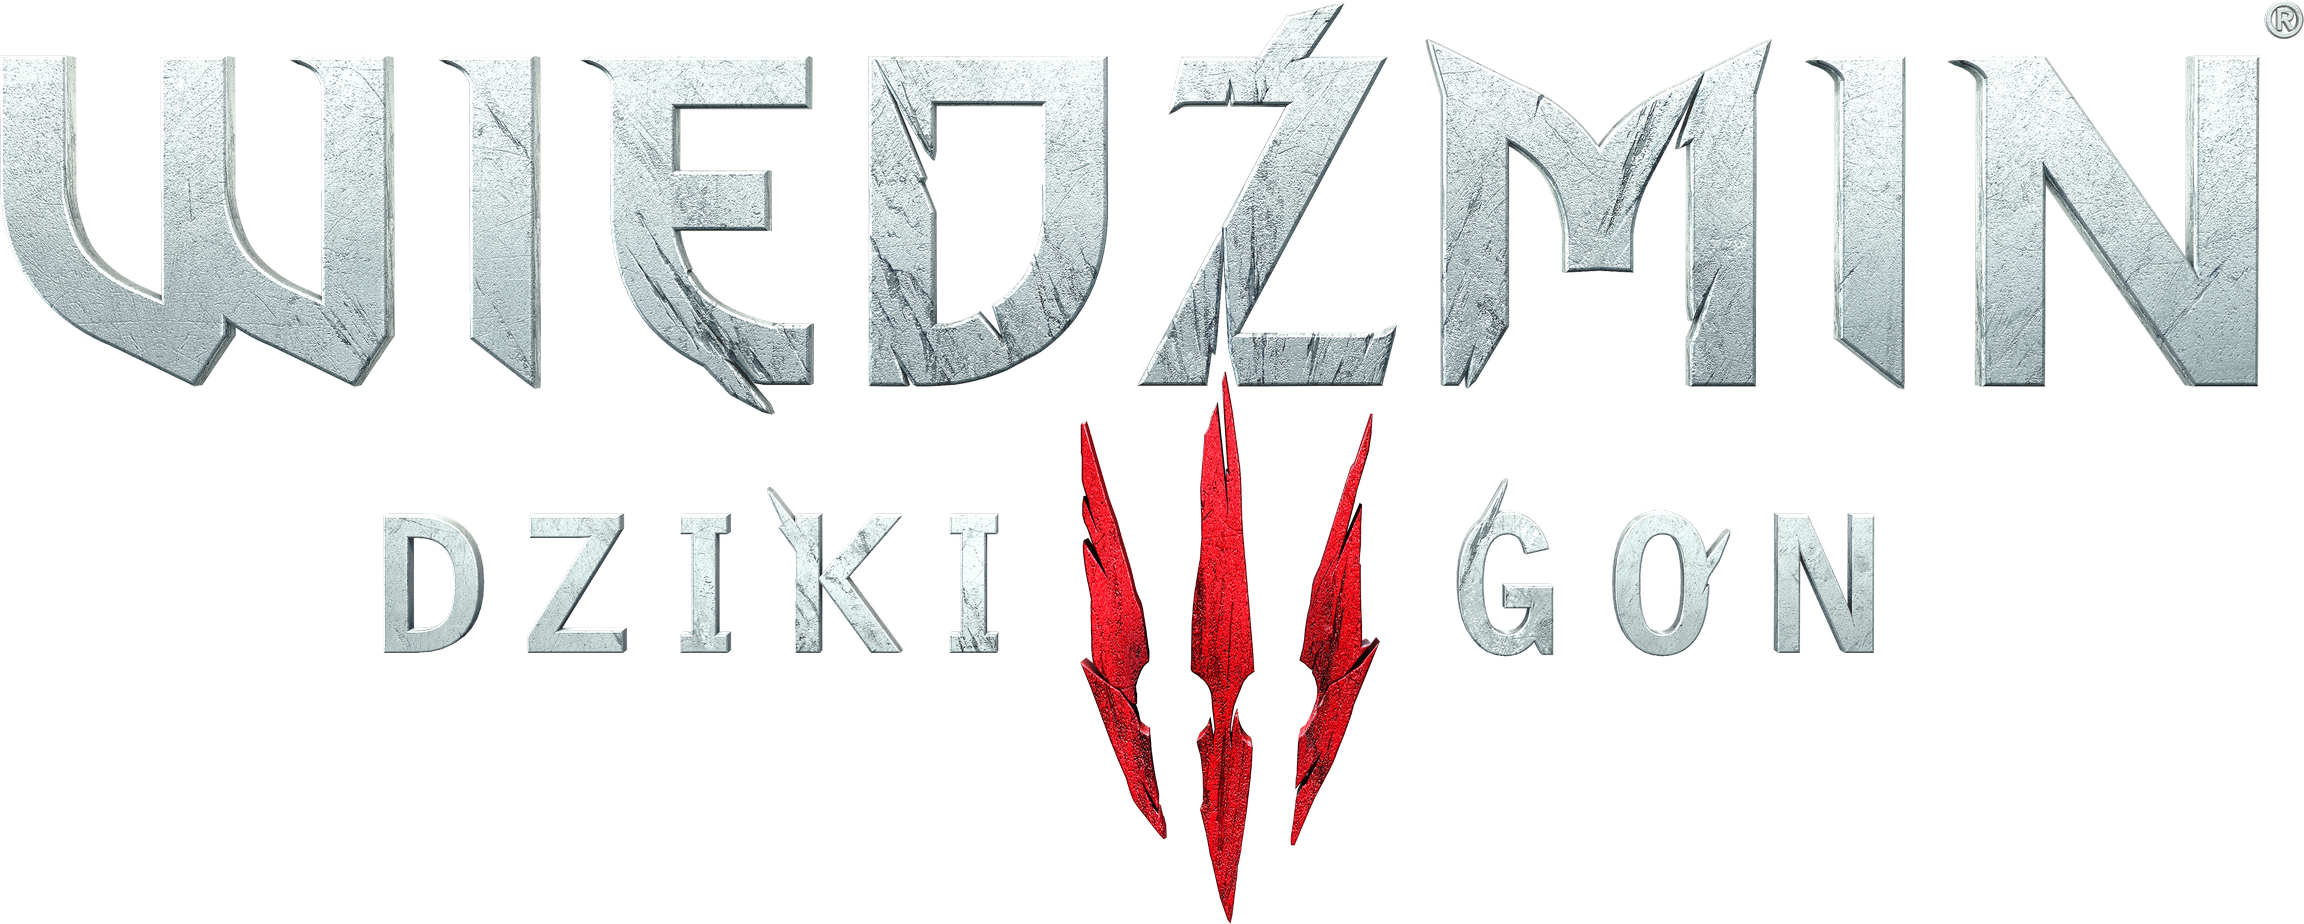 The Witcher 3 Logo Png Image The Witcher Png Images The Witcher 3